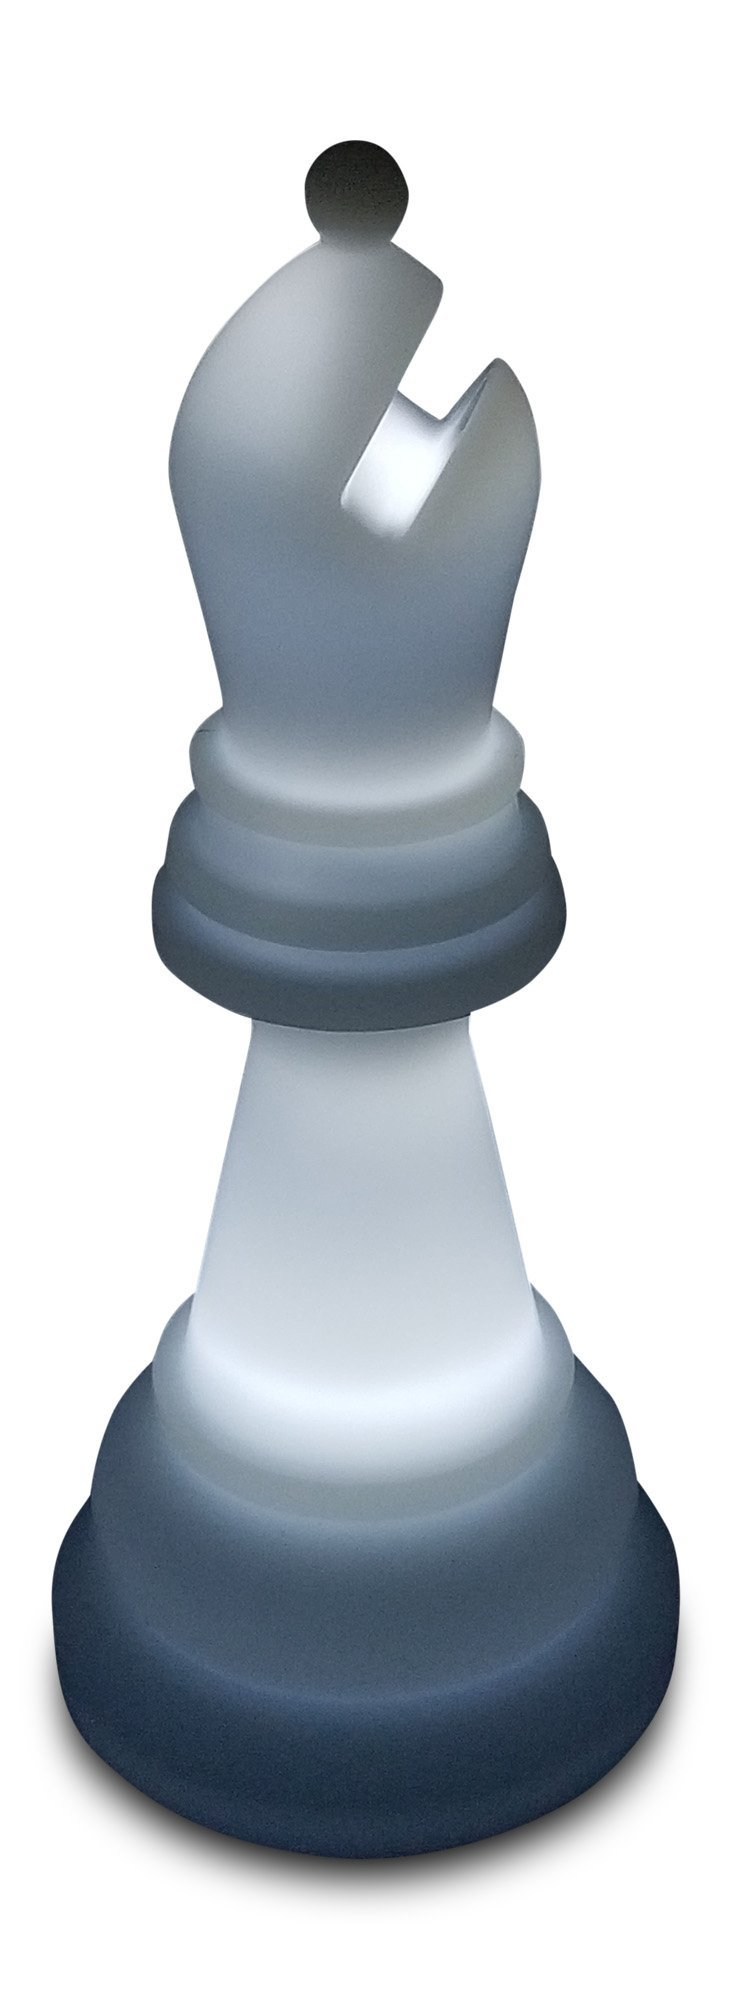 MegaChess 20 Inch Premium Plastic Bishop Light-Up Giant Chess Piece - White |  | MegaChess.com